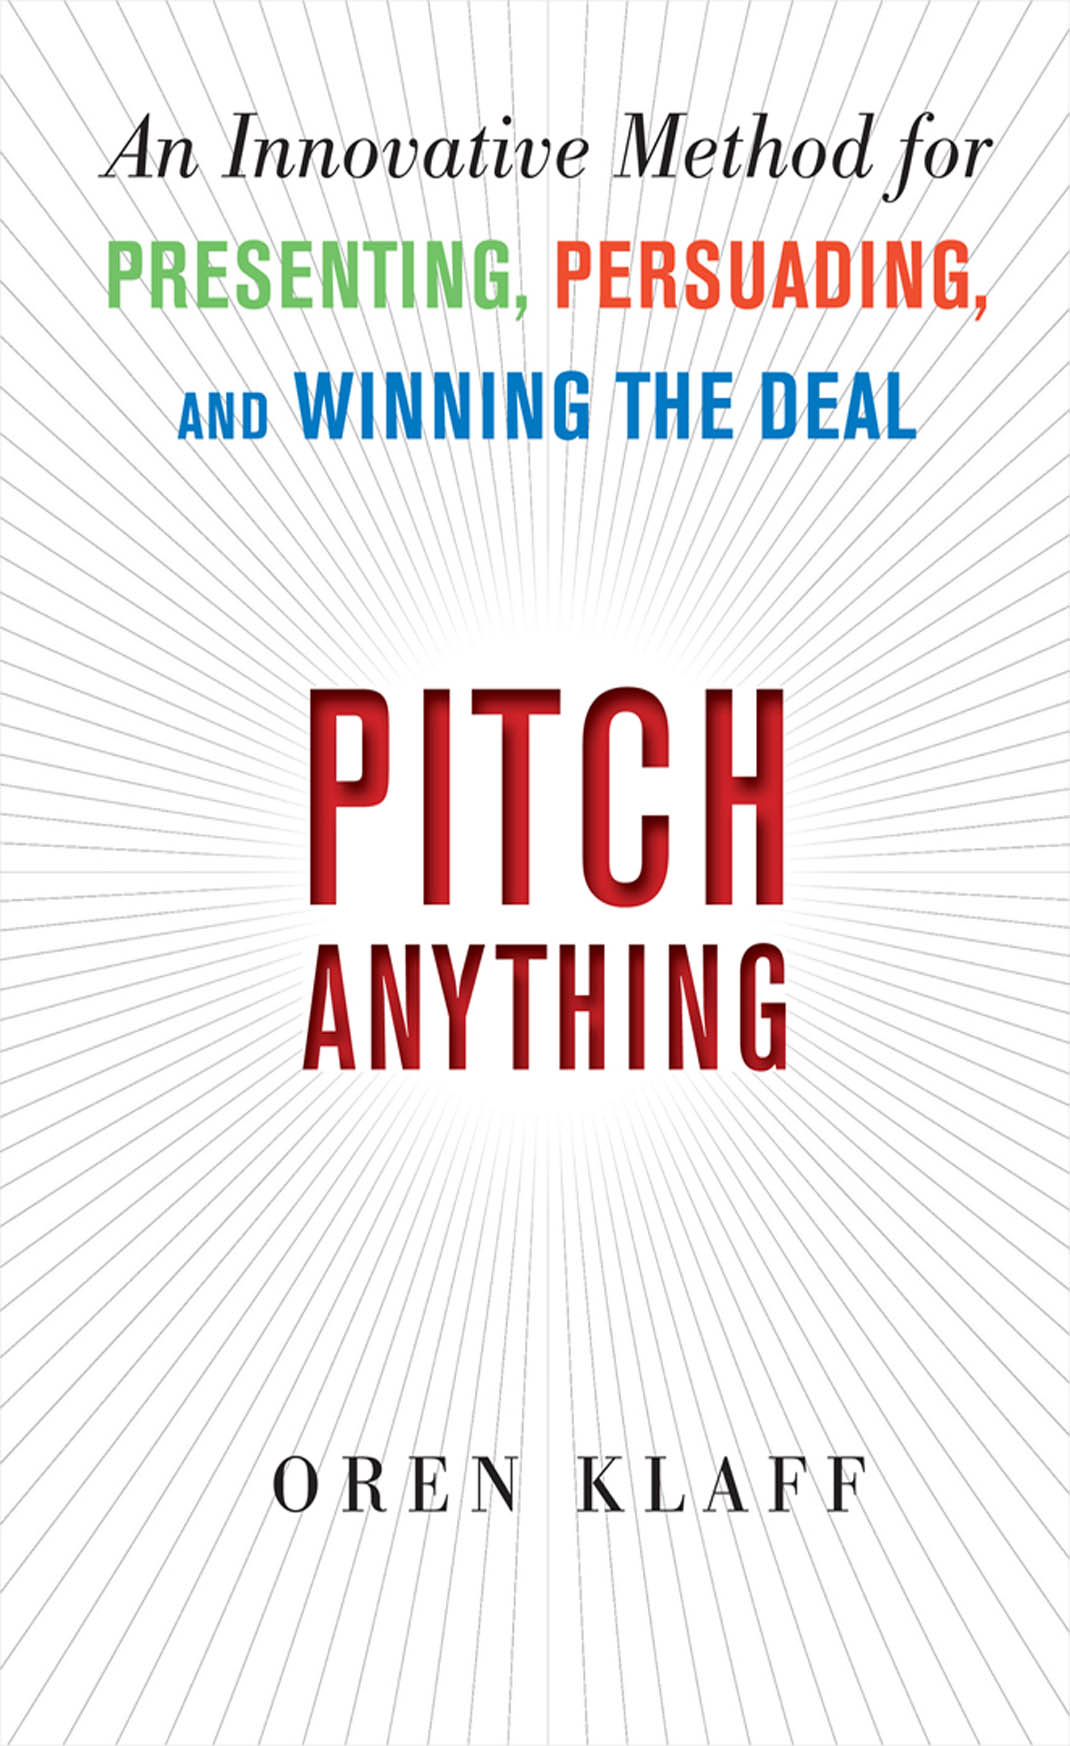 Download Ebook Pitch Anything: An Innovative Method for Presenting, Persuading, and Winning the Deal by Oren Klaff Pdf